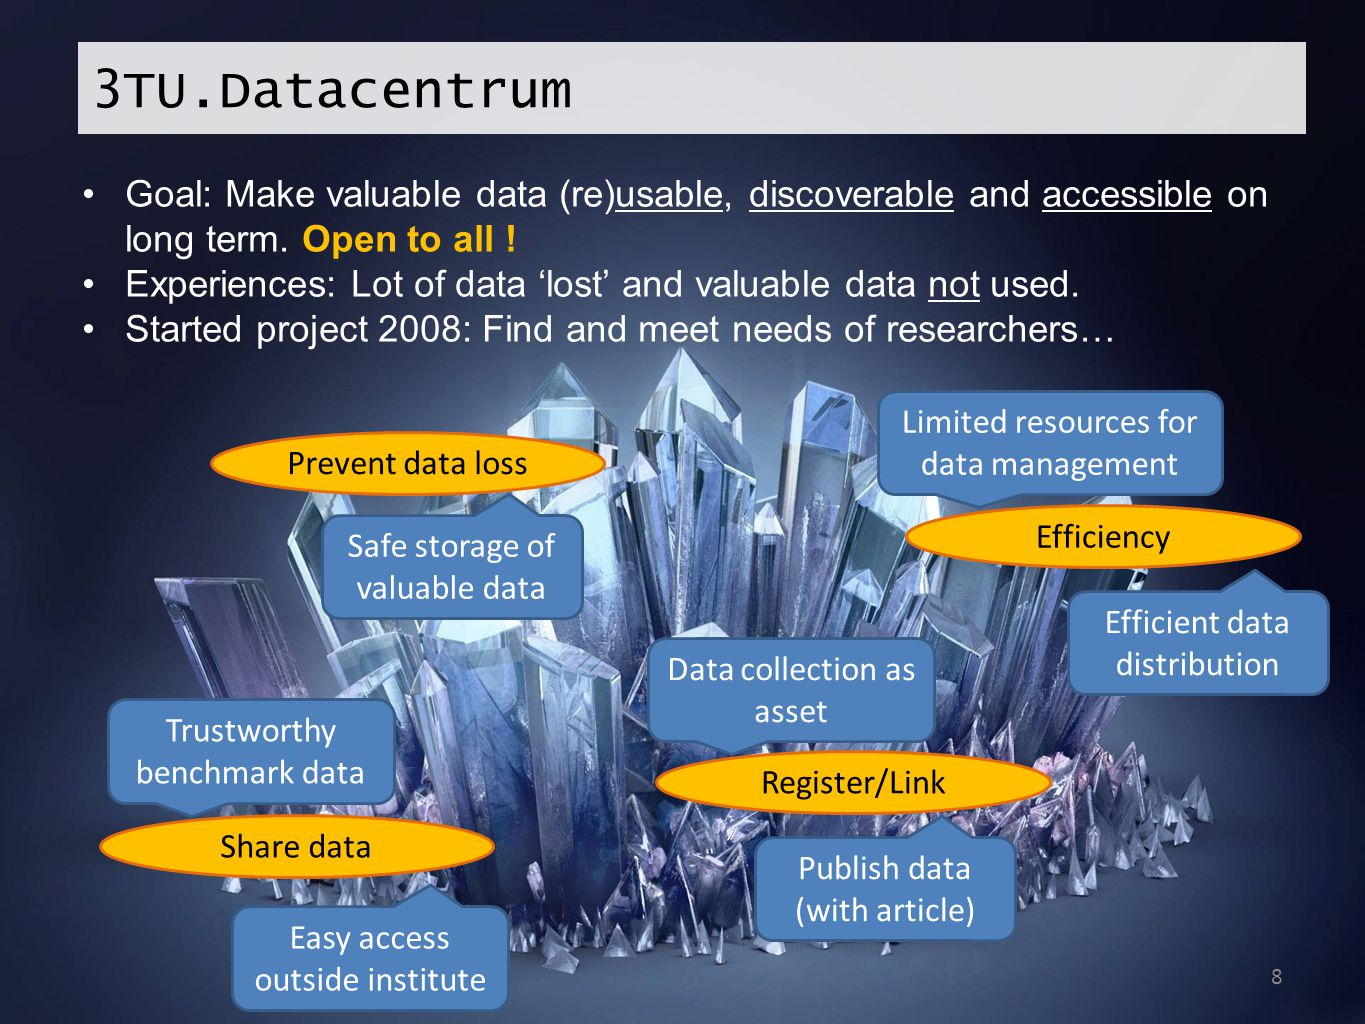 3TU.Datacentrum Goal: Make valuable data (re)usable, discoverable and accessible on long term. Open to all !